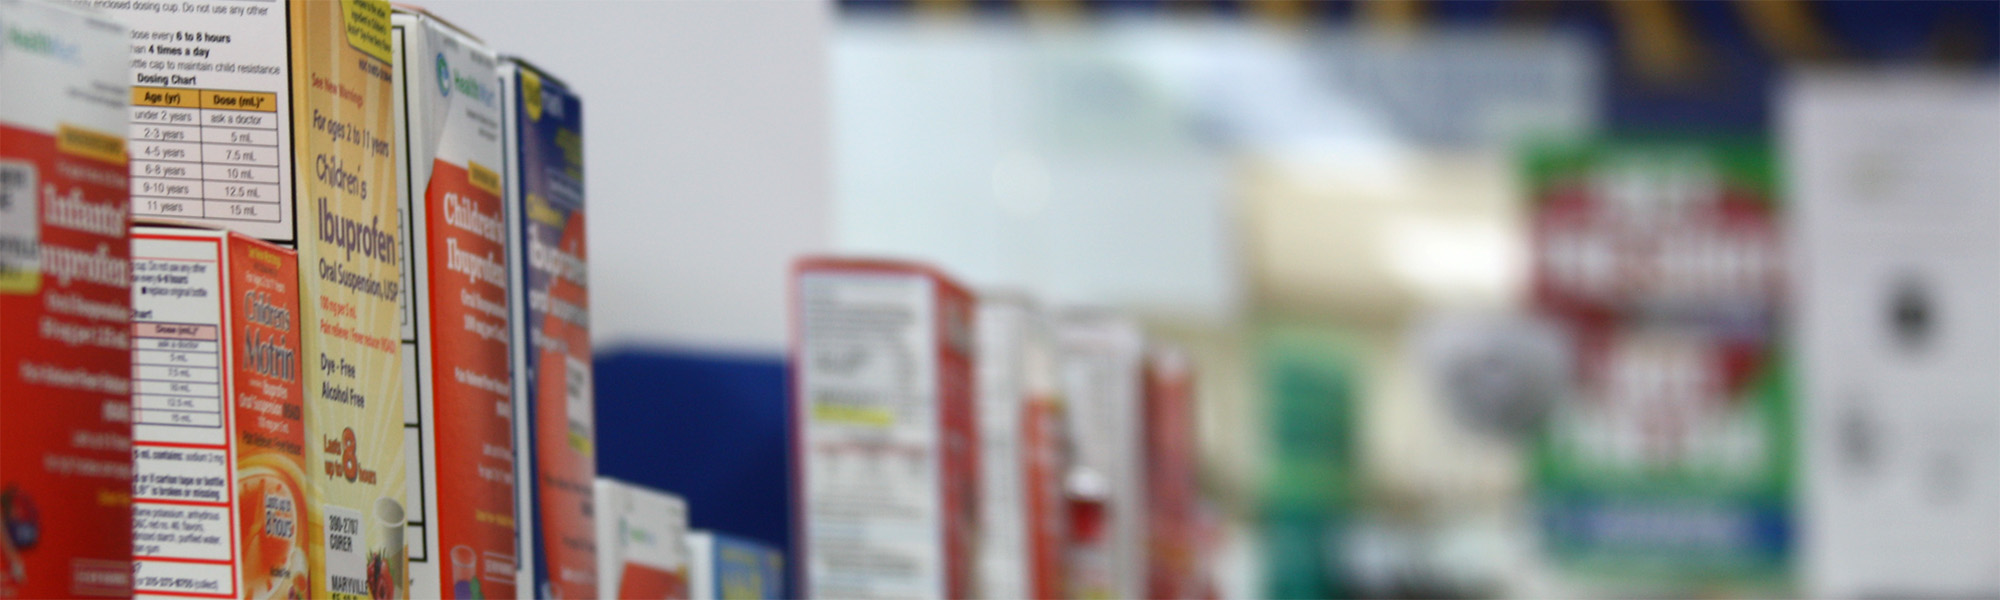 Maryville IL Pharmacy Over the Counter Medicine